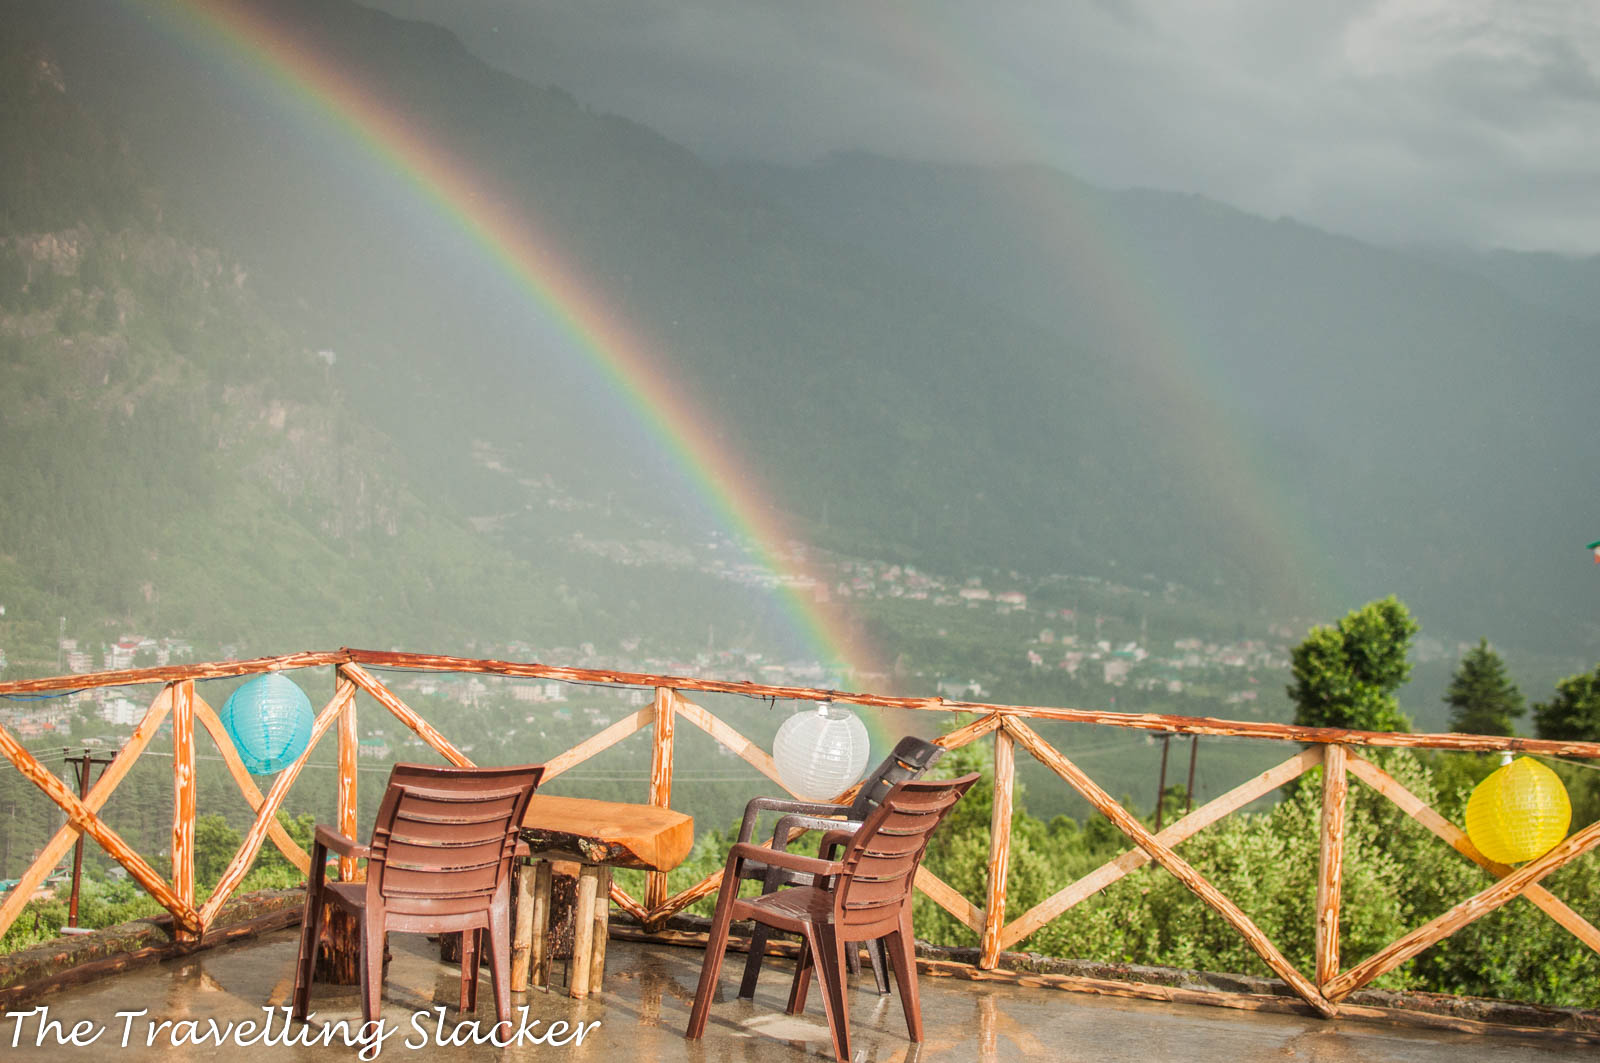 Manali Beyond Clichés: How Backpackers Can Salvage the Manali Trip